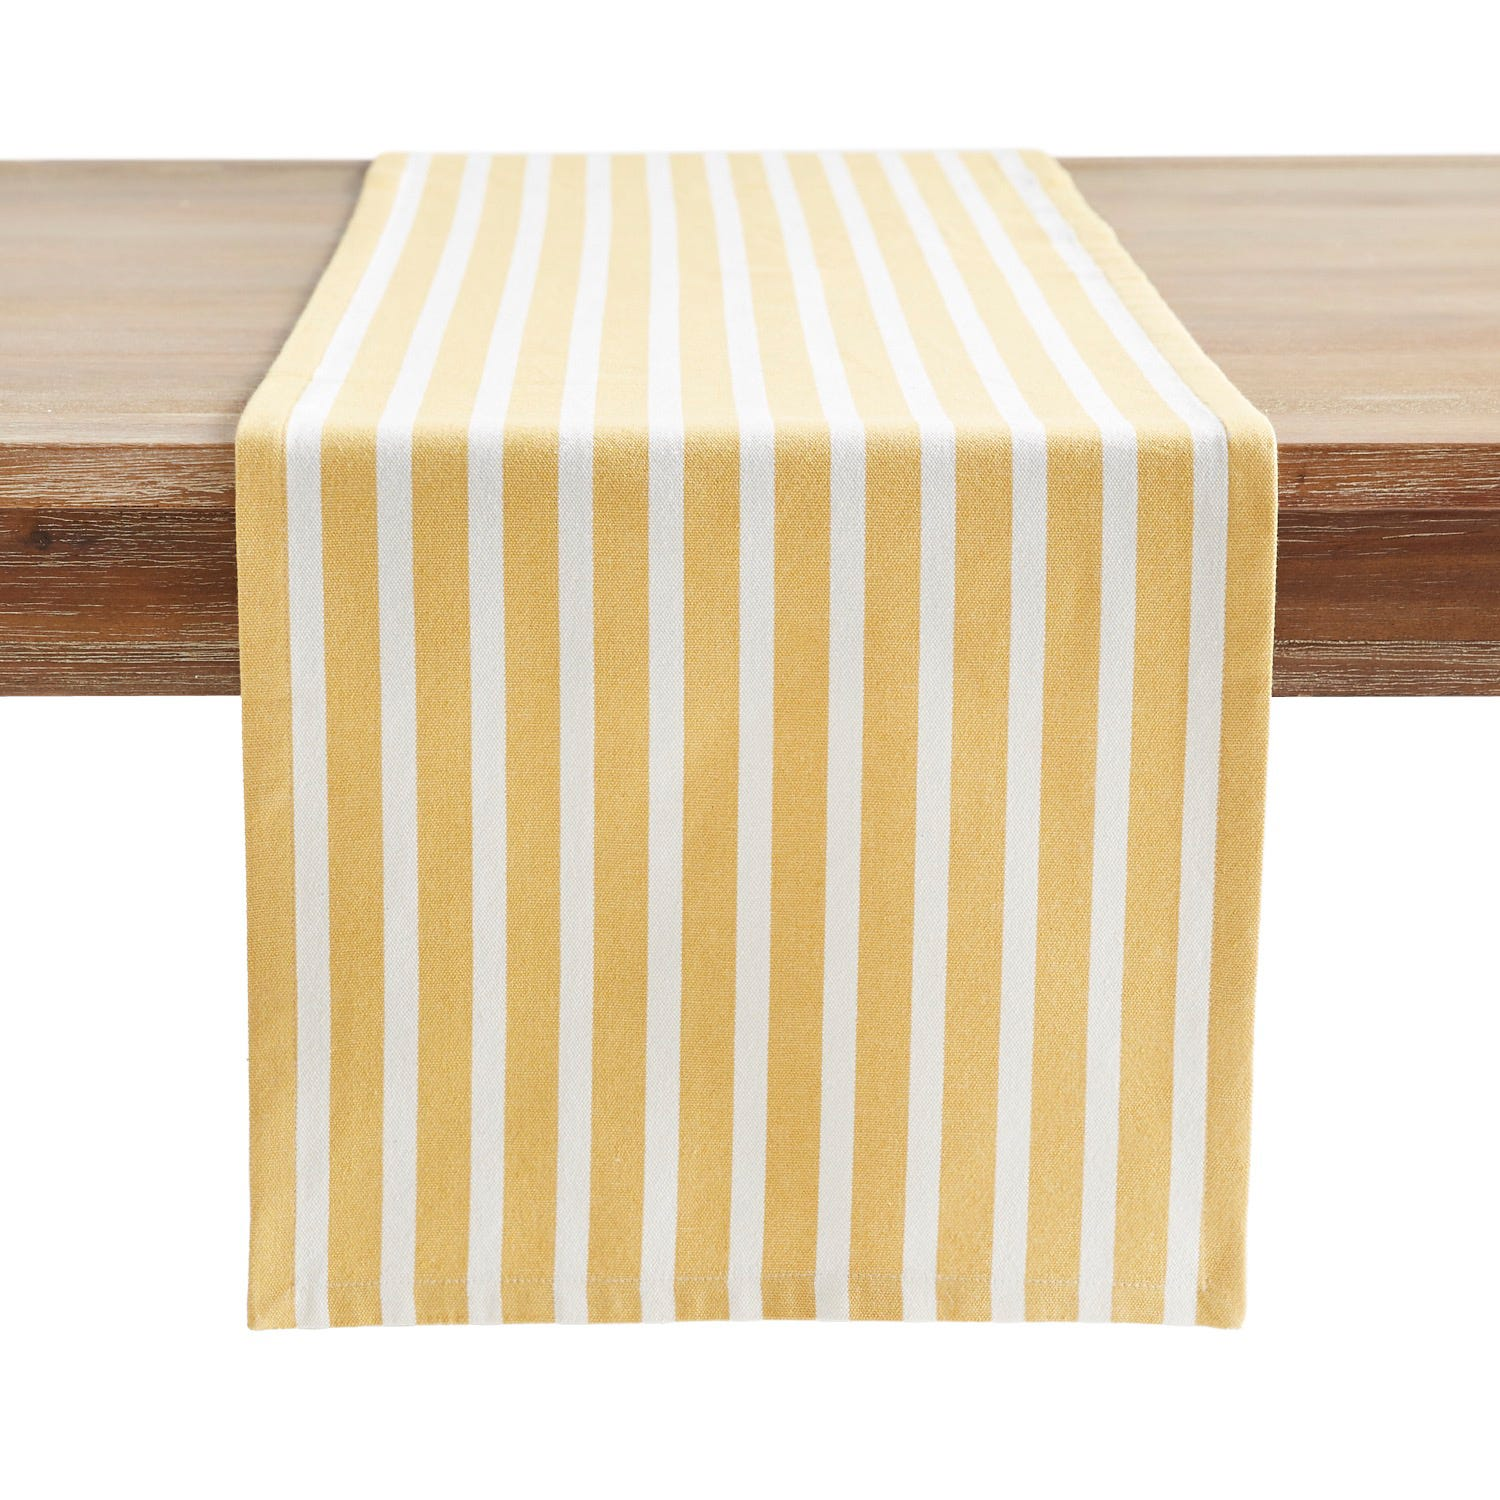 Striped table runner from Pier 1